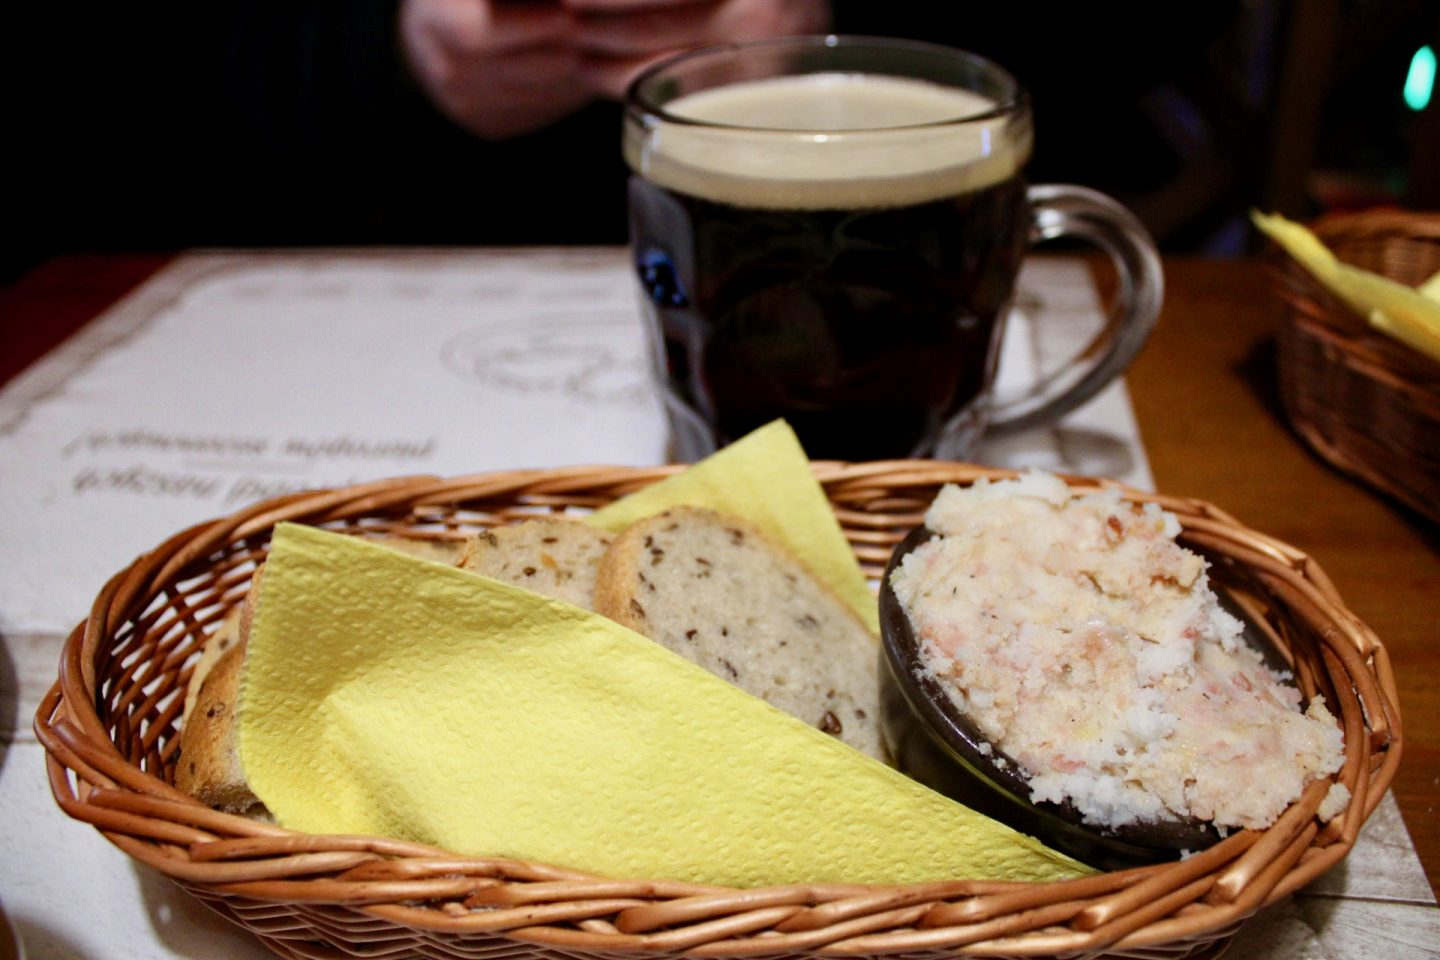 best bars restaurants wroclaw - bread topped with lard in a bread basket, with beer in the background